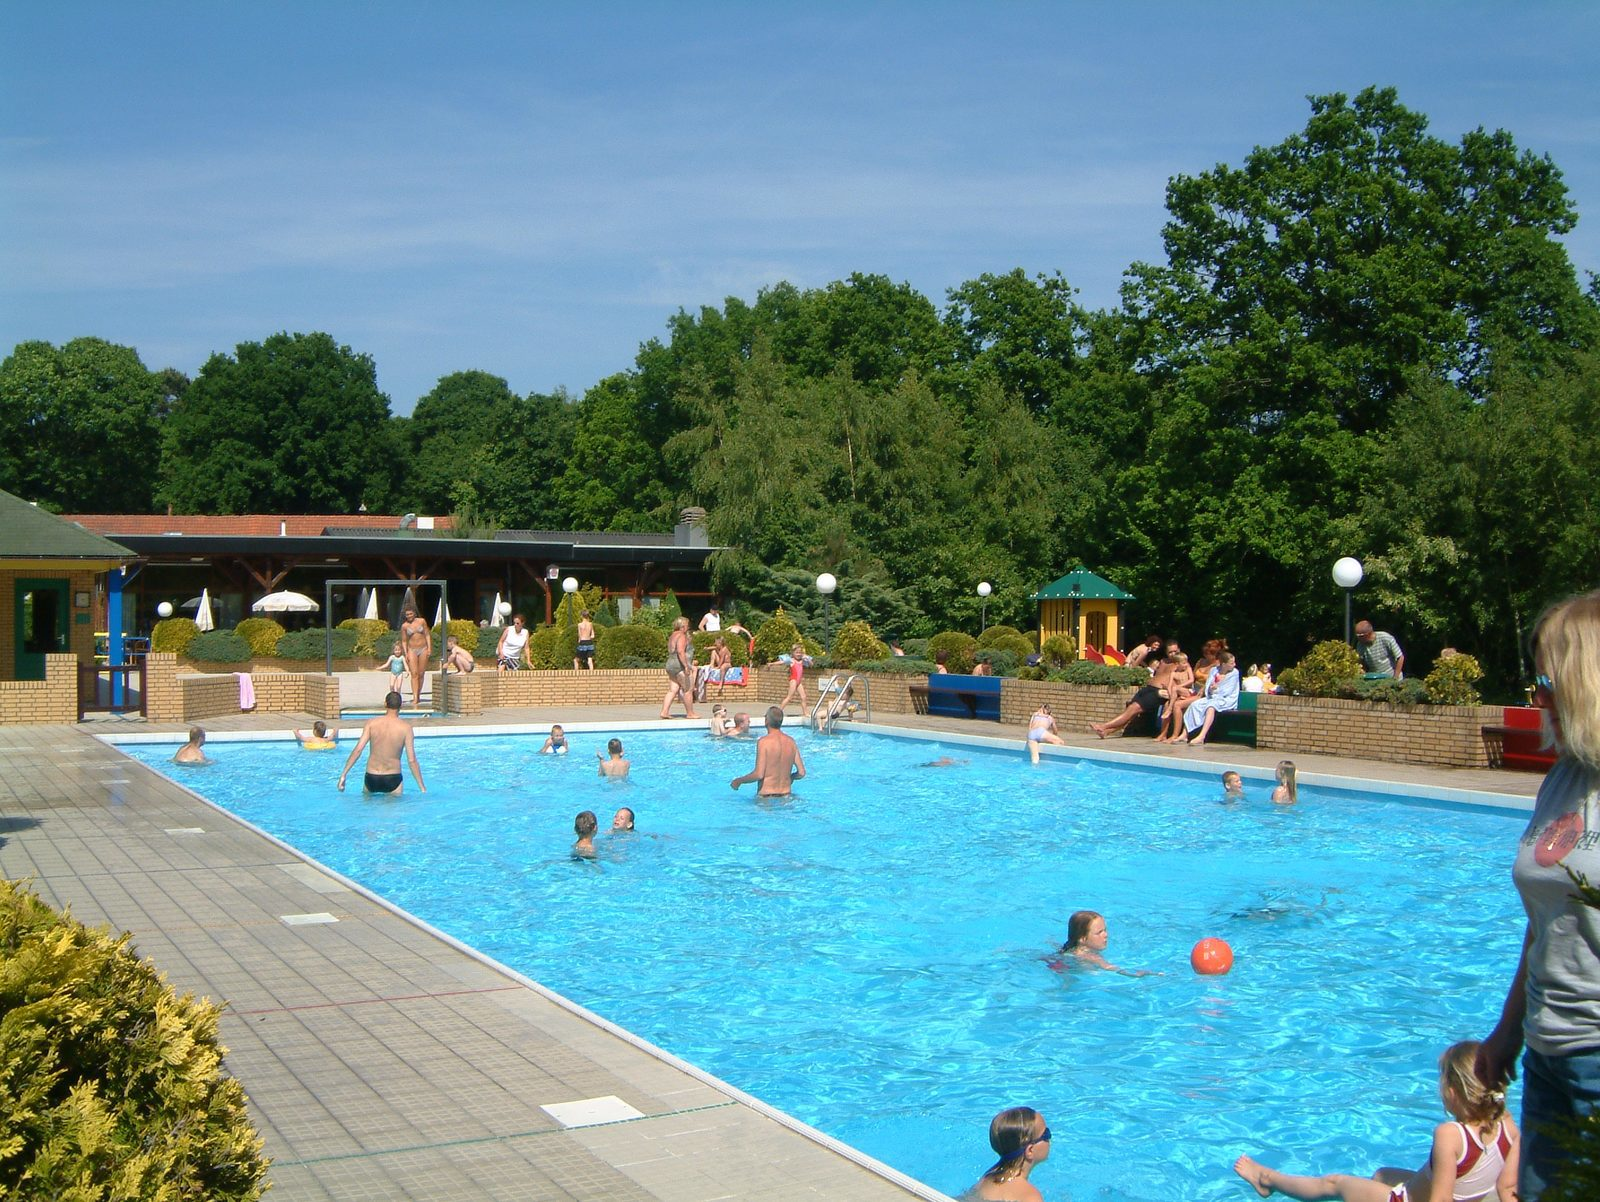 Parc de Kievit has a holiday home for 10 people in Brabant, where you can use the heated outdoor pool.